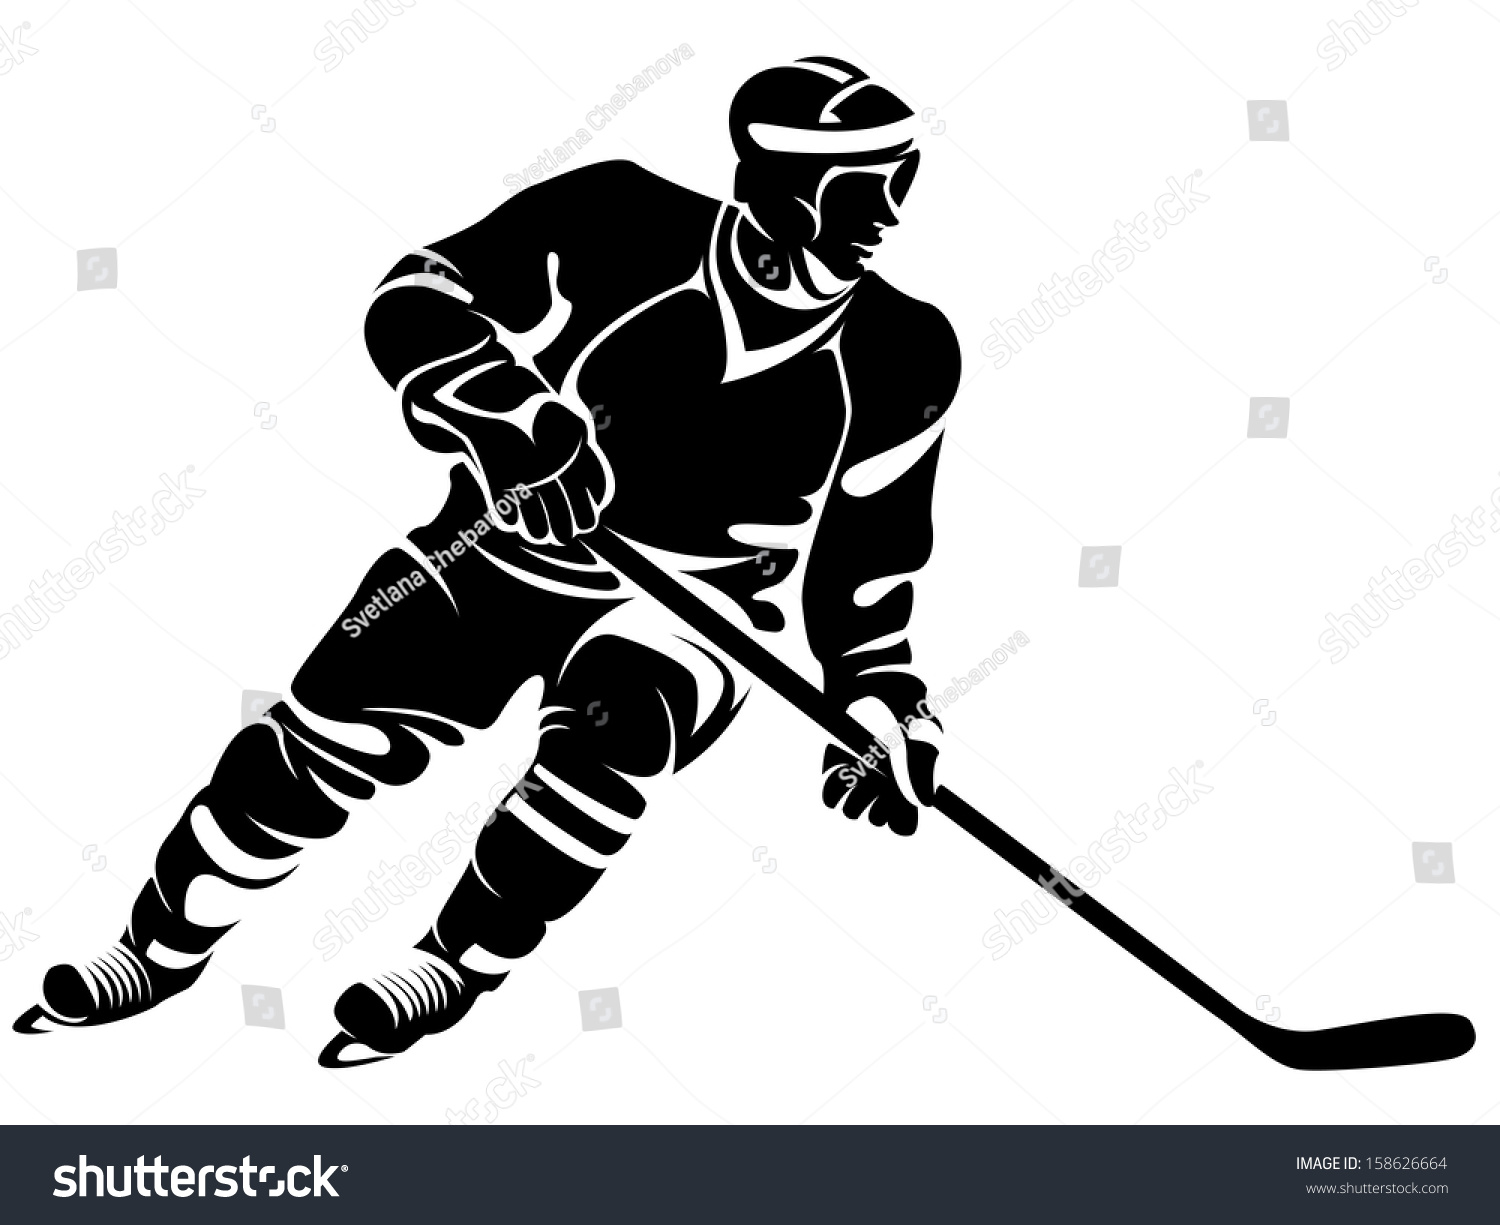 hockey player silhouette stock vector 158626664